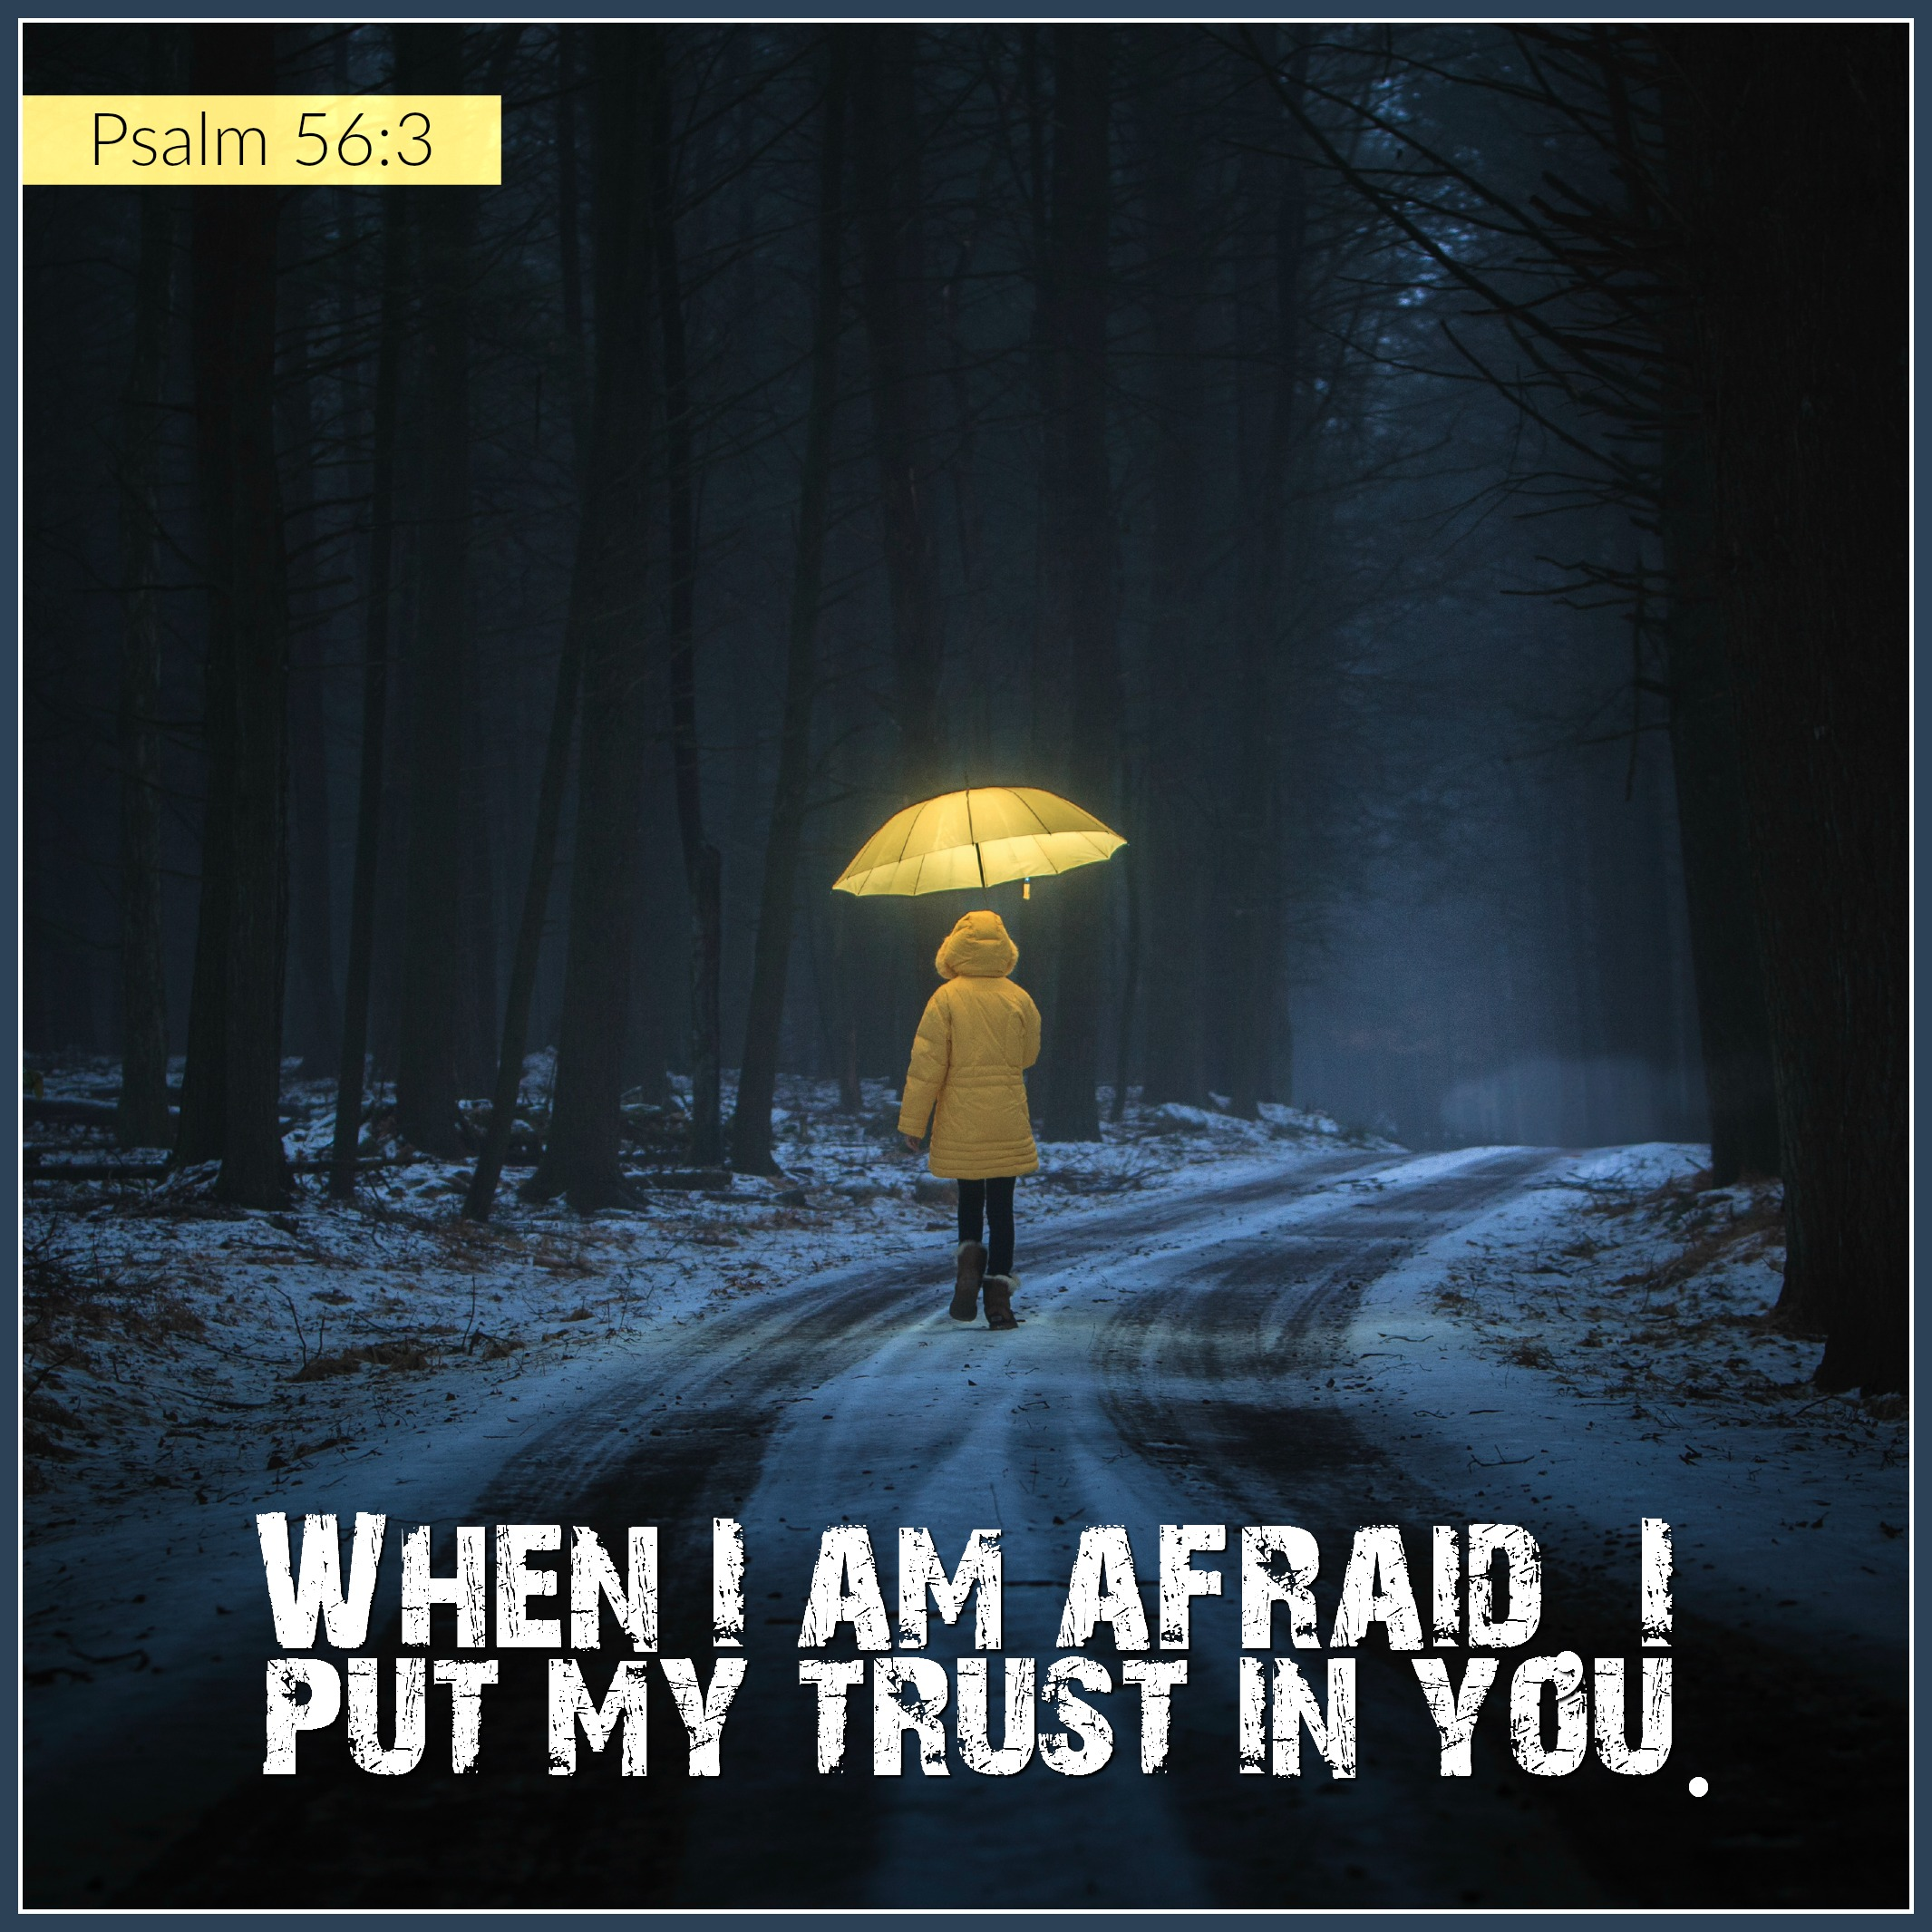 Daily Verse: Psalm 56:3